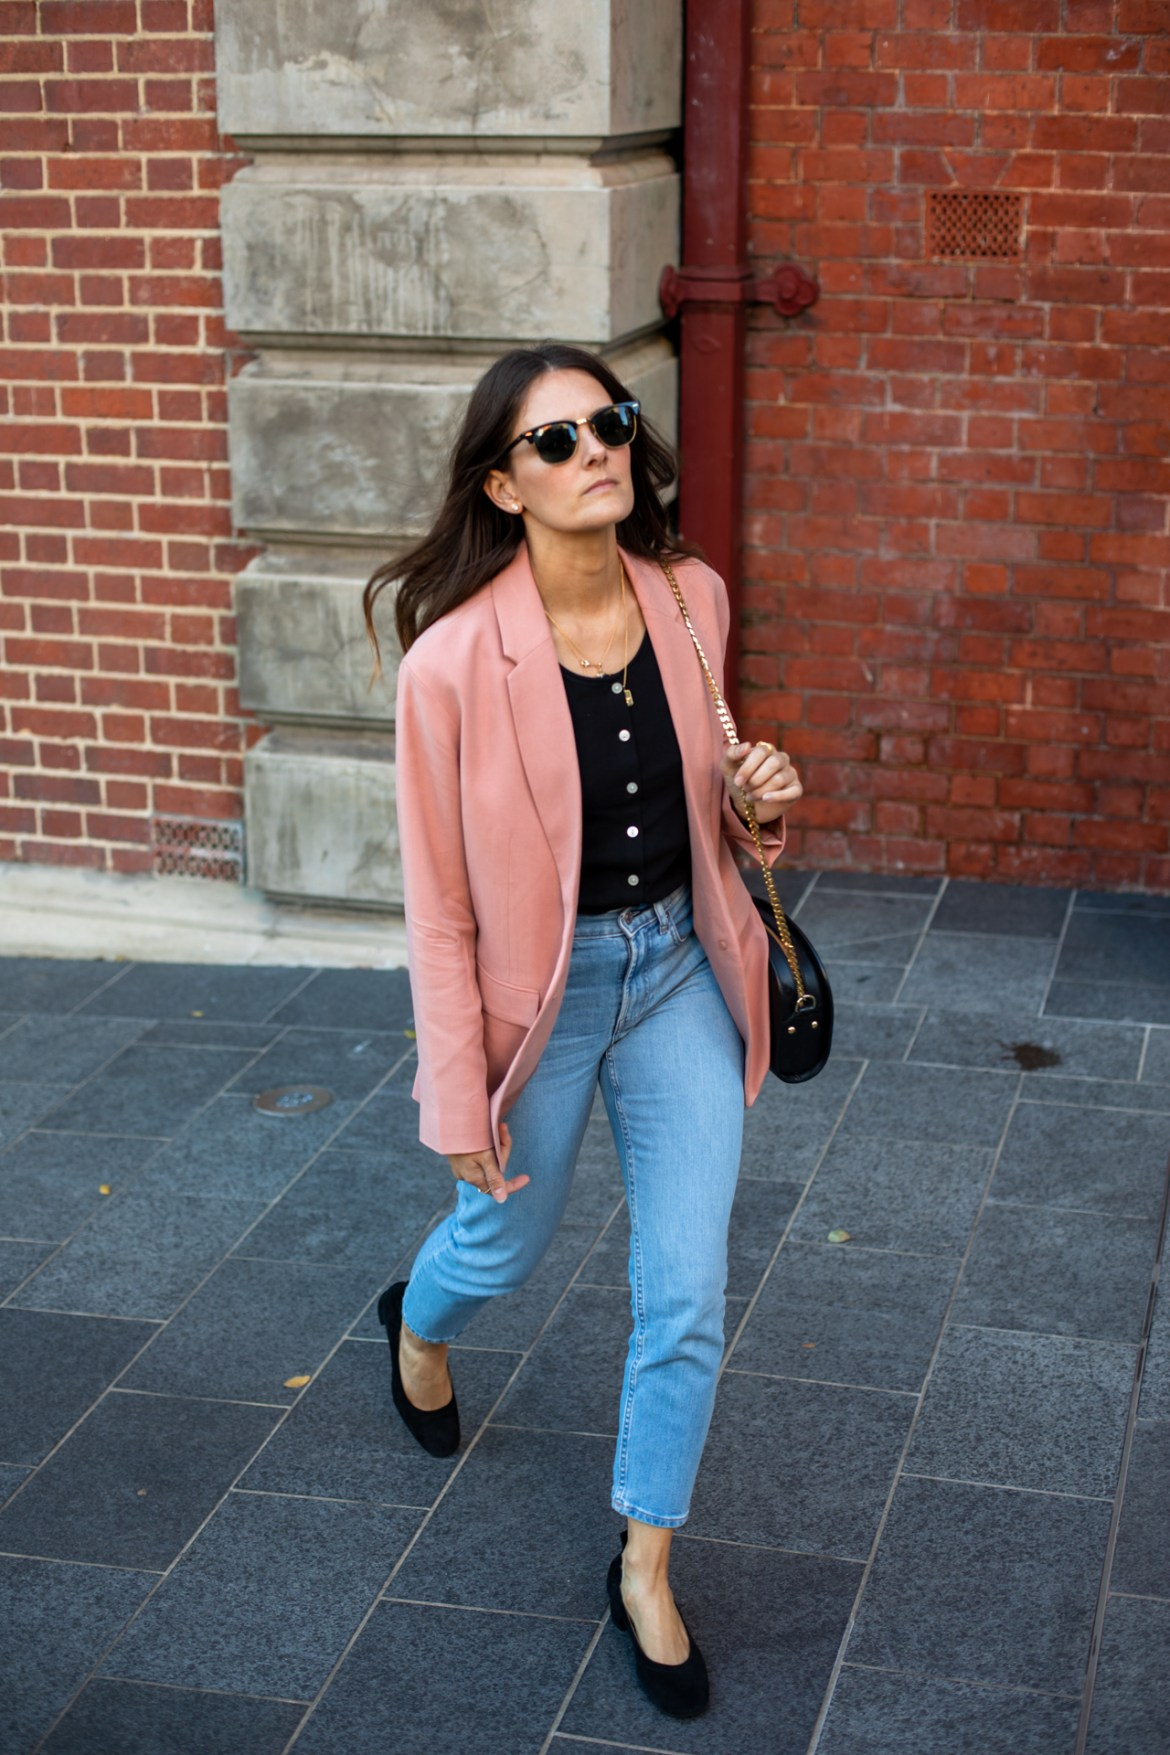 My go-to outfit wearing four of my favourite Everlane essentials, the cheeky straight jeans, a basic tank, the Day heels and an easy blazer. Outfit ideas for women who want a minimal but cool modern look.